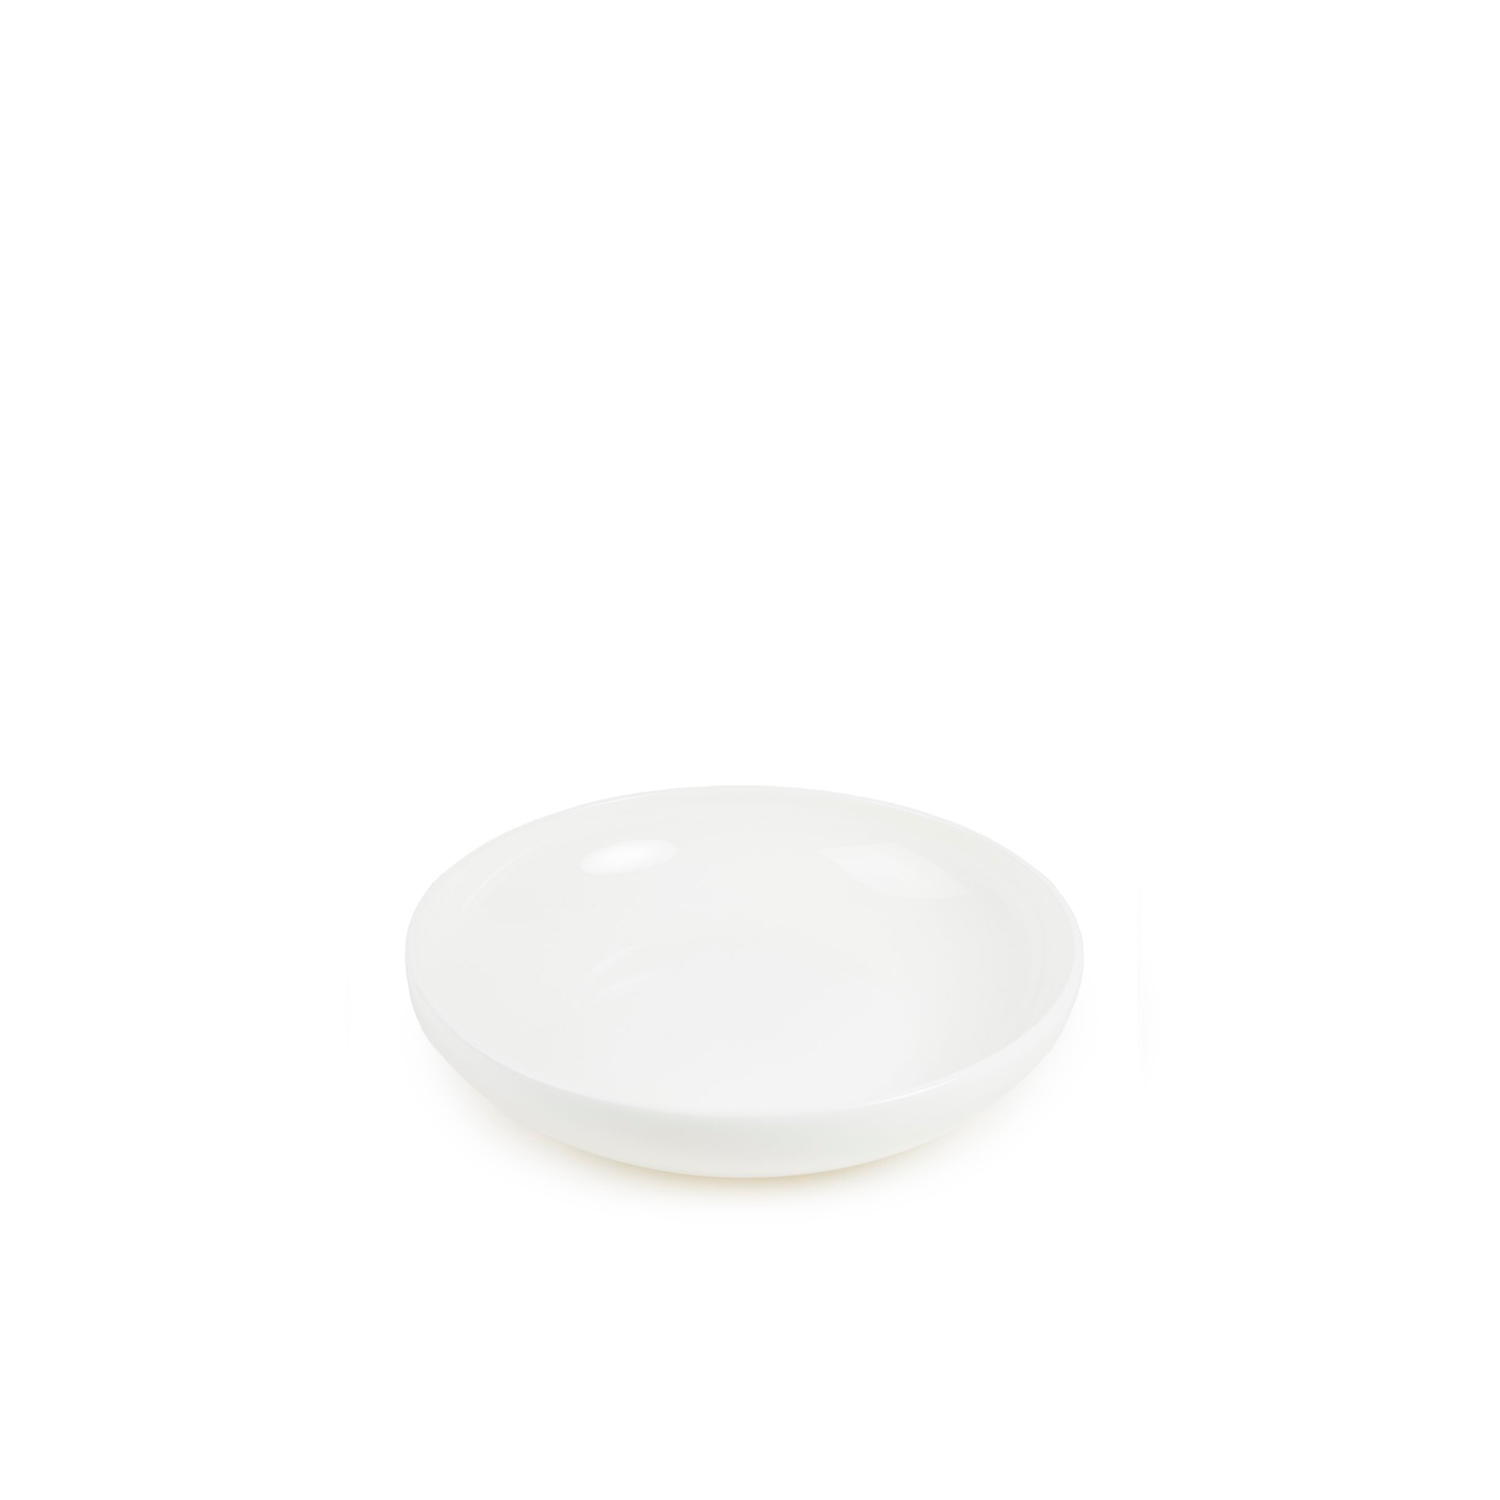 White Pasta Bowl - The purist fine bone china table ware. Designed by Chris Johnson and made in Stoke-on-Trent. This forms the base of all our collections and the most wonderful foundation for any table. Made in England. Microwave and dishwasher safe.  | Matter of Stuff